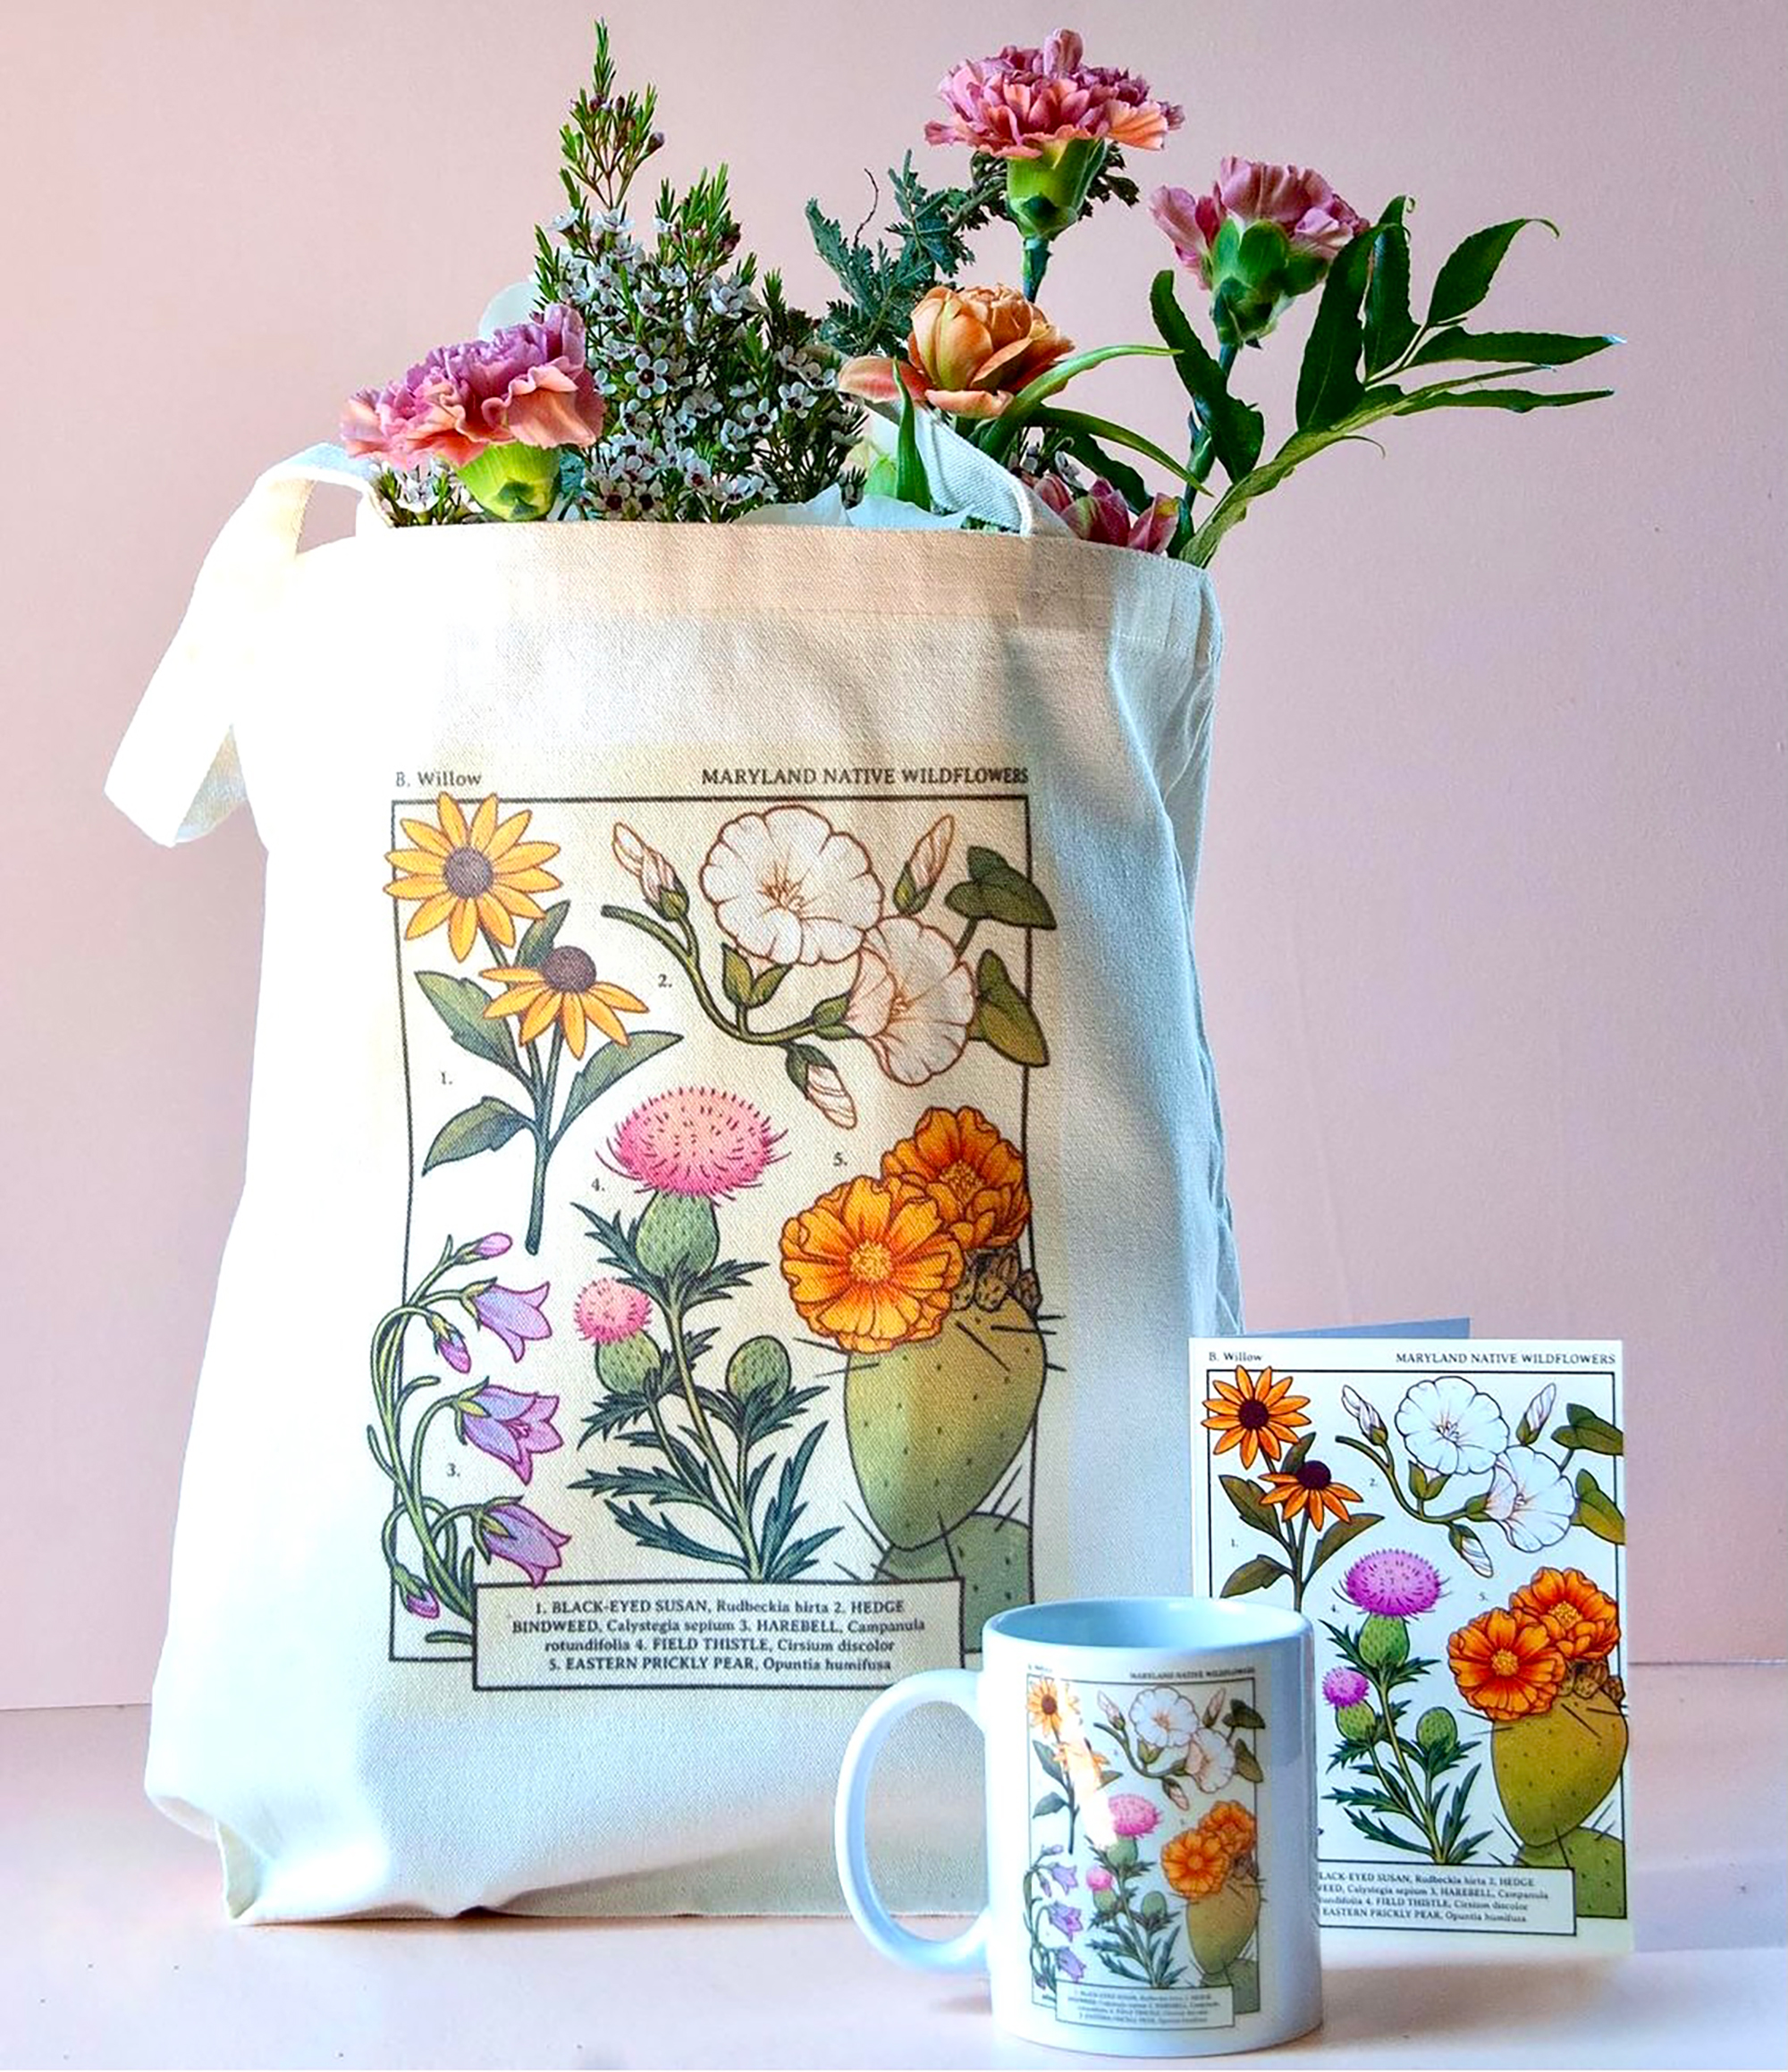 A woman-owned plant store in Baltimore commissioned @loonpflug for her spin on a vintage botanical drawing featuring Maryland native wildflowers. This package, printed by Alpha Graphics, includes tote, mug, and blank card.Photo credit: bwillowbmo..